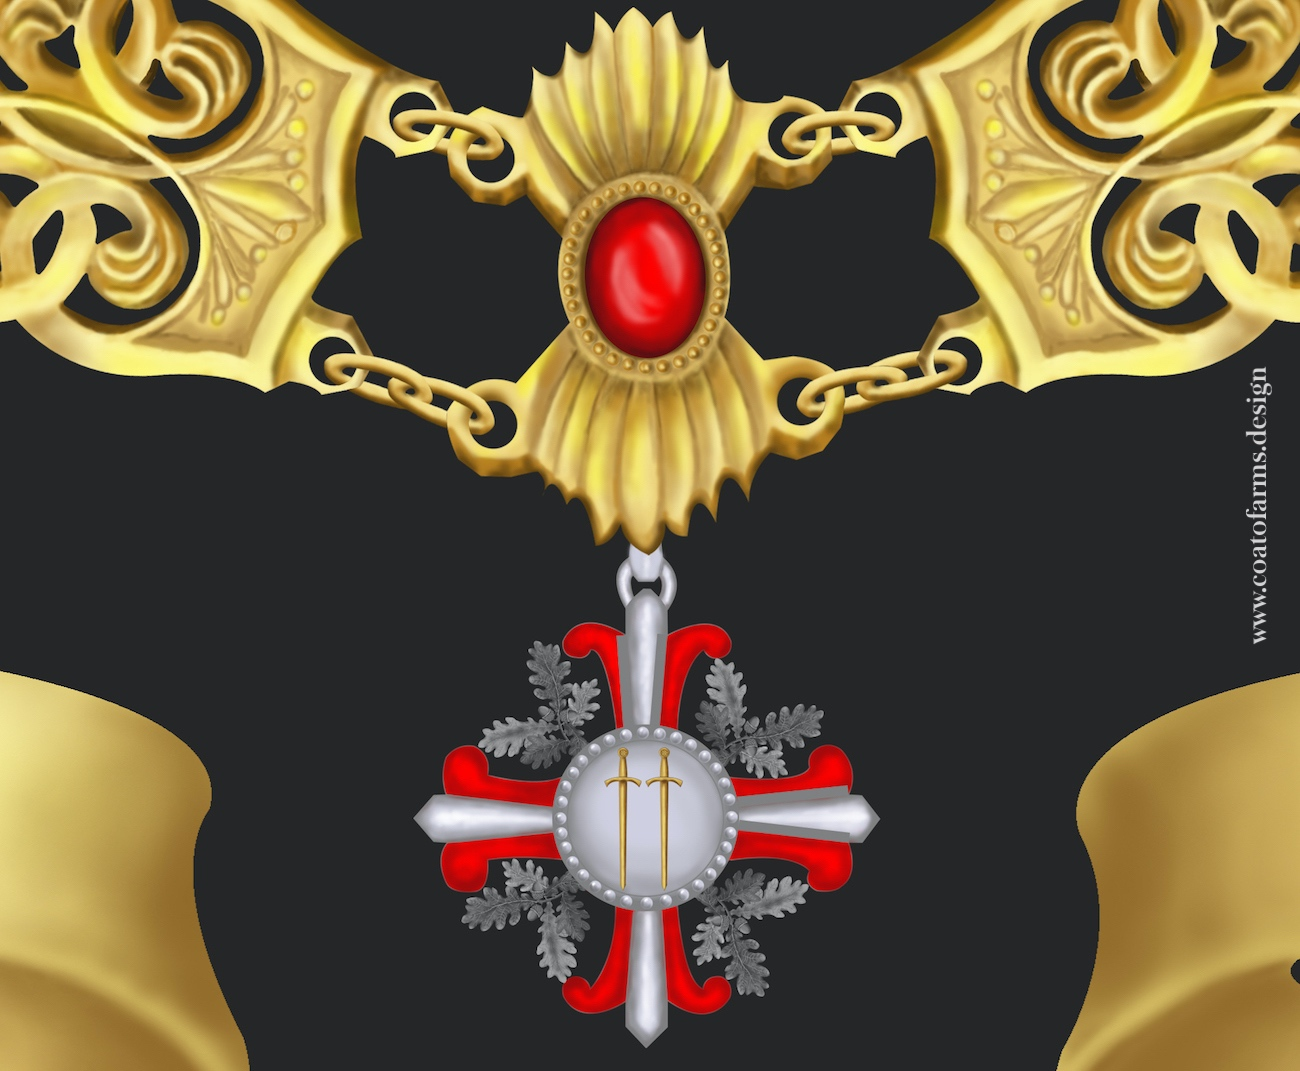 Coat of arms (family crest) I designed for an attorney family from Austria detail 3